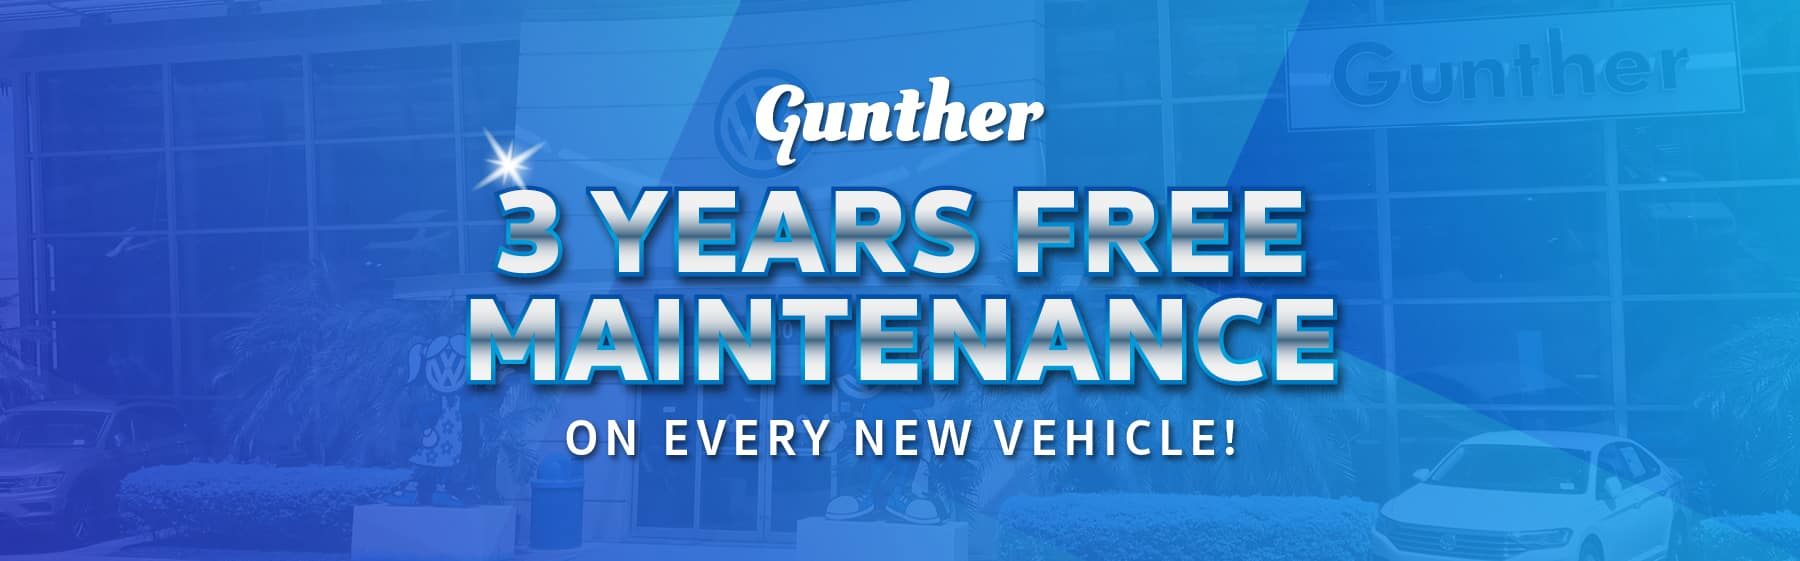 Gunther 3 years free maintenance on every new vehicle!